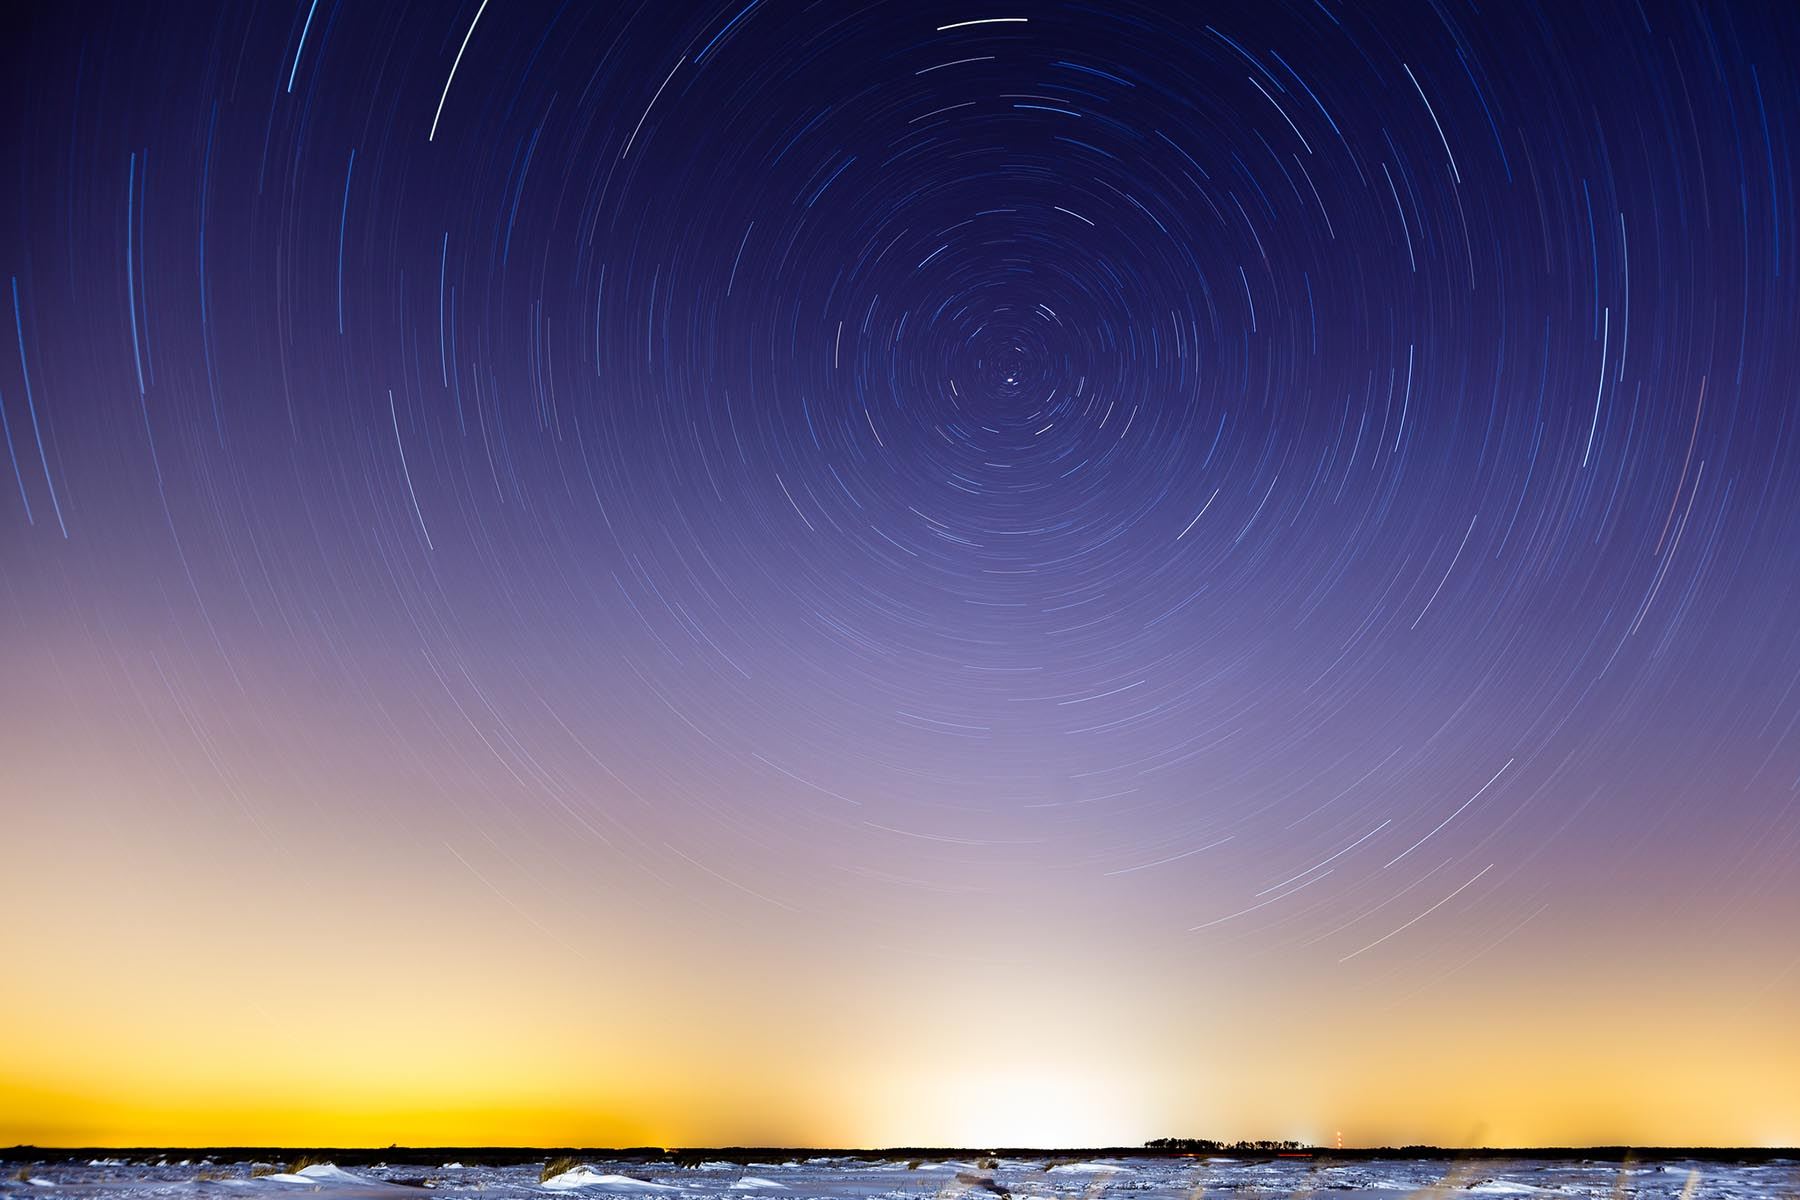 photo essay exploring the harriet tubman underground railroad  polaris also known as the north star appears stationary above the horizon of blackwater national wildlife refuge tubman who grew up near the refuge in